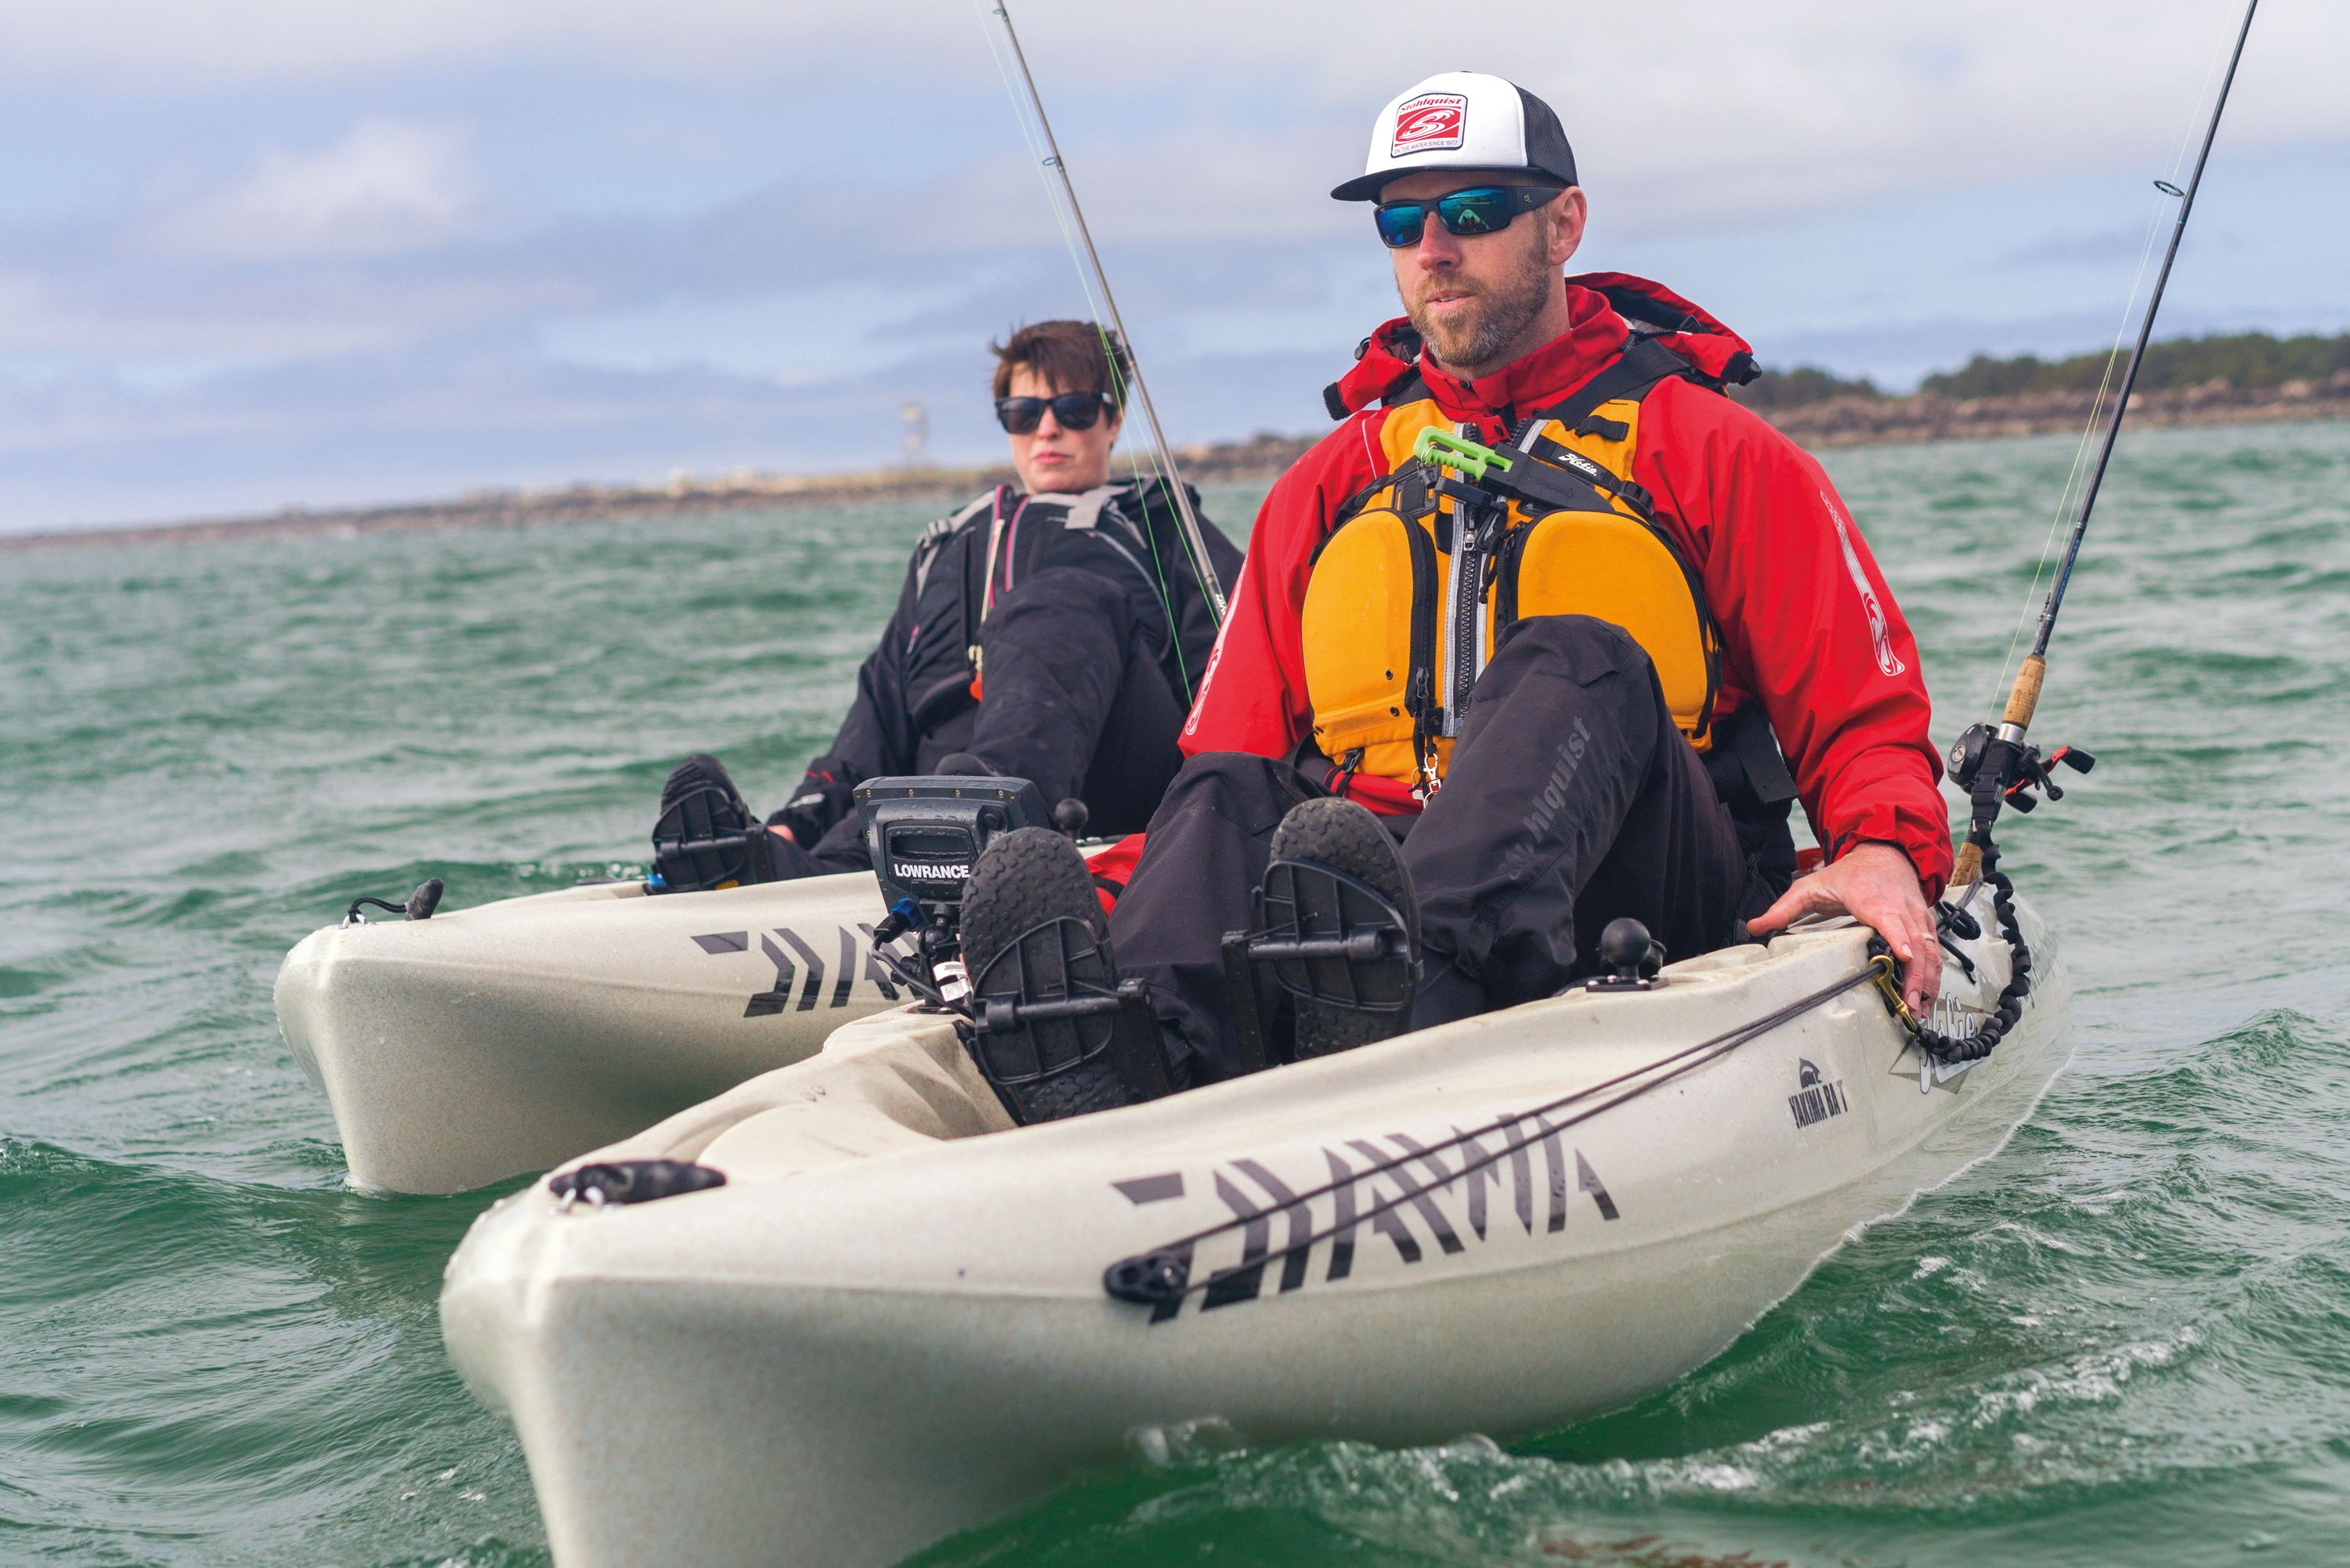 Pomo 0616 ocean kayak fishing 2 u3uuxc